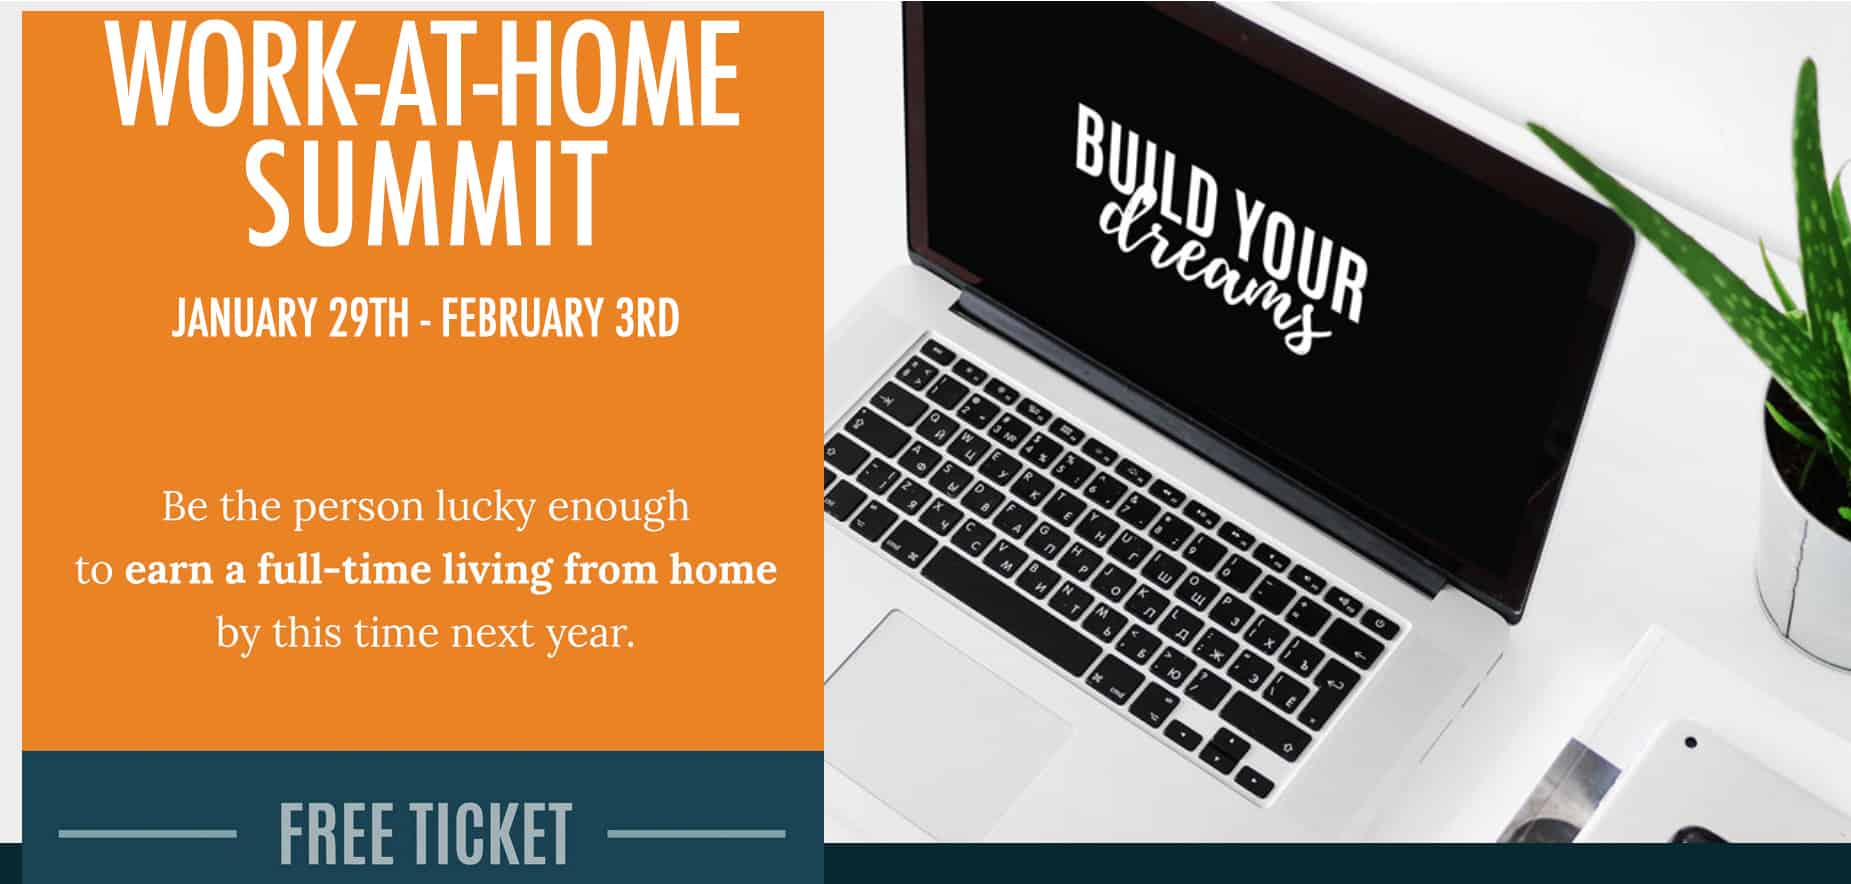 Want to learn the secrets to working from home? From January 29, 2018 to February 3, 2018, you'll learn from Caitlin and 45 other experts on how you can work from home this year. | work at home | www.travelingwellforless.com